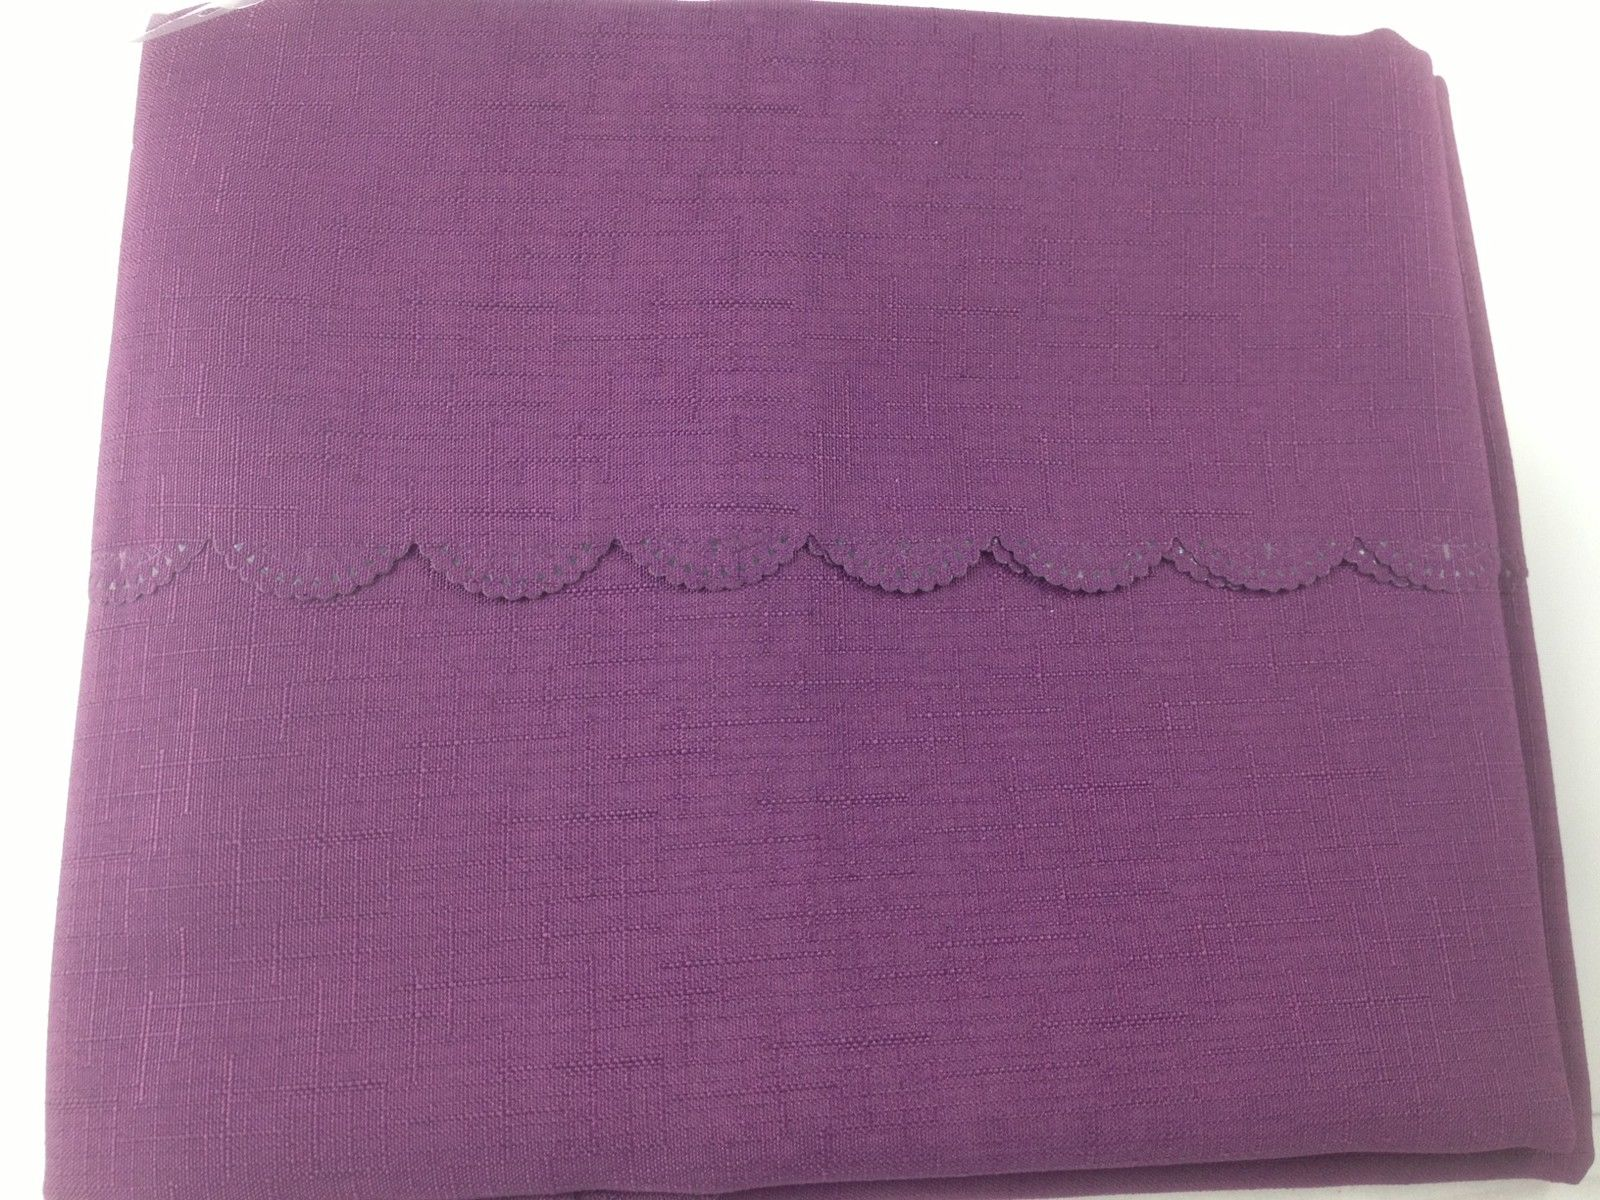 Shell Tablecloth Aubergine 137x229cm Oblong